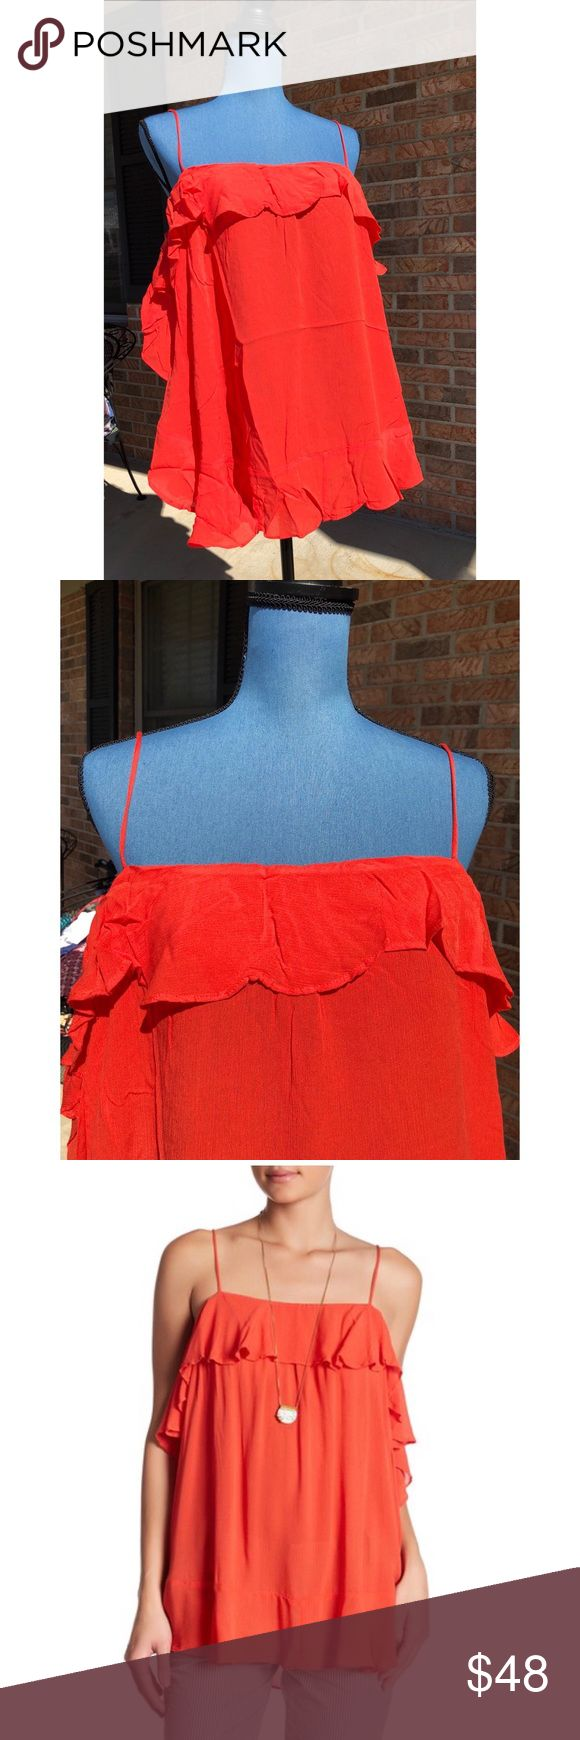 FREE PEOPLE Cascades Cami Drop Shoulder Top M NWT spaghetti Strap Top from FREE PEOPLE.  Size M. Cascades Camisole.  Red/Orange.  Fabrication and Sizing:  See photo. Free People Tops Camisoles